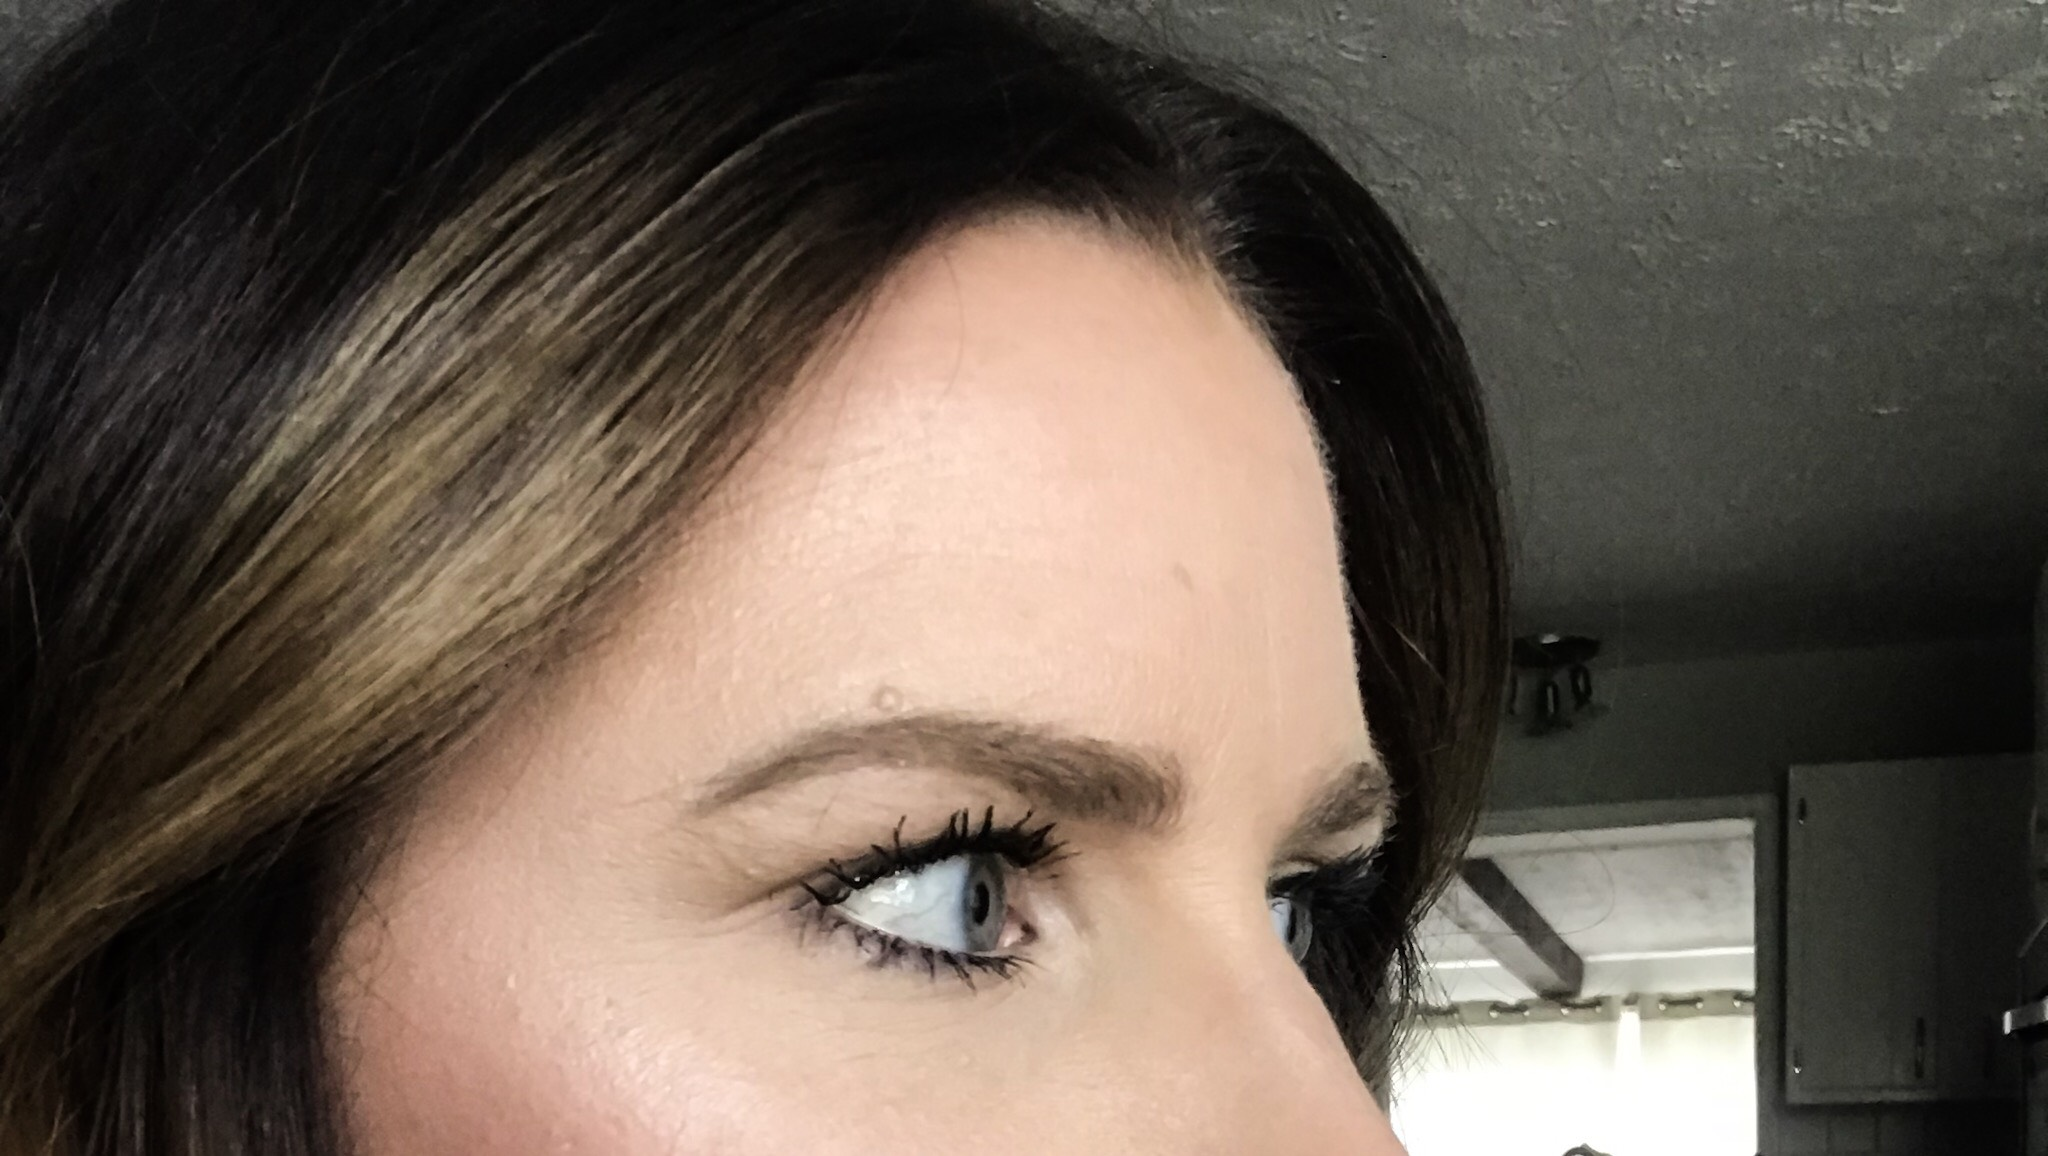 Right Brow 6 Weeks After First Session